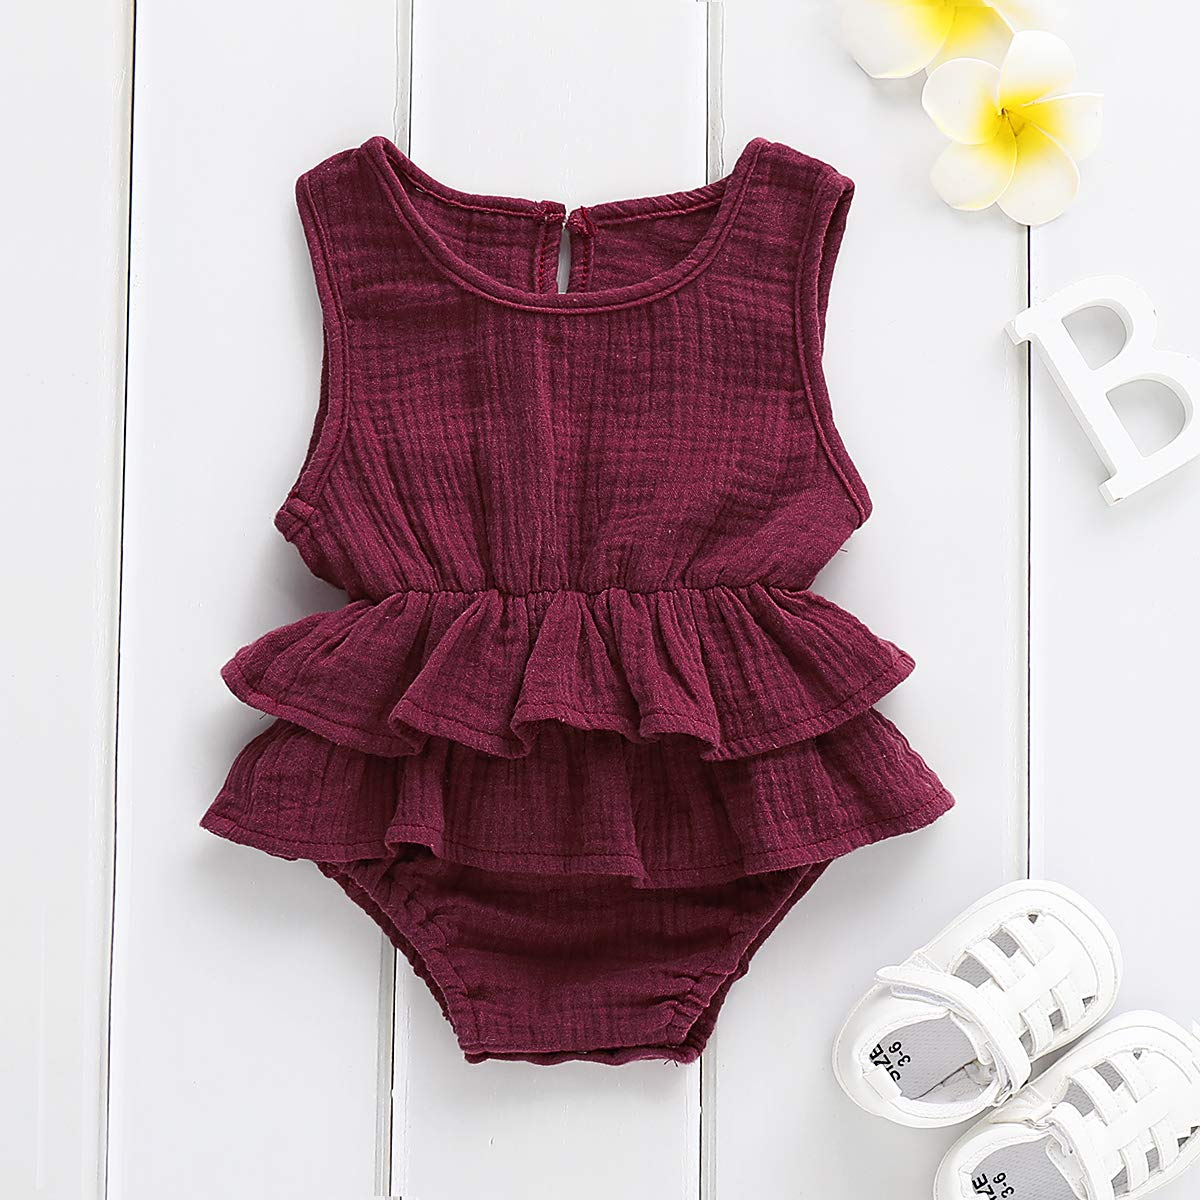 50e38b79eef5 Amazon.com  Bowanadacles Newborn Baby Girl Romper Jumpsuit Cotton Linen  Sleeveless Ruffled Bodysuit Infant Summer Clothes Outfits  Clothing